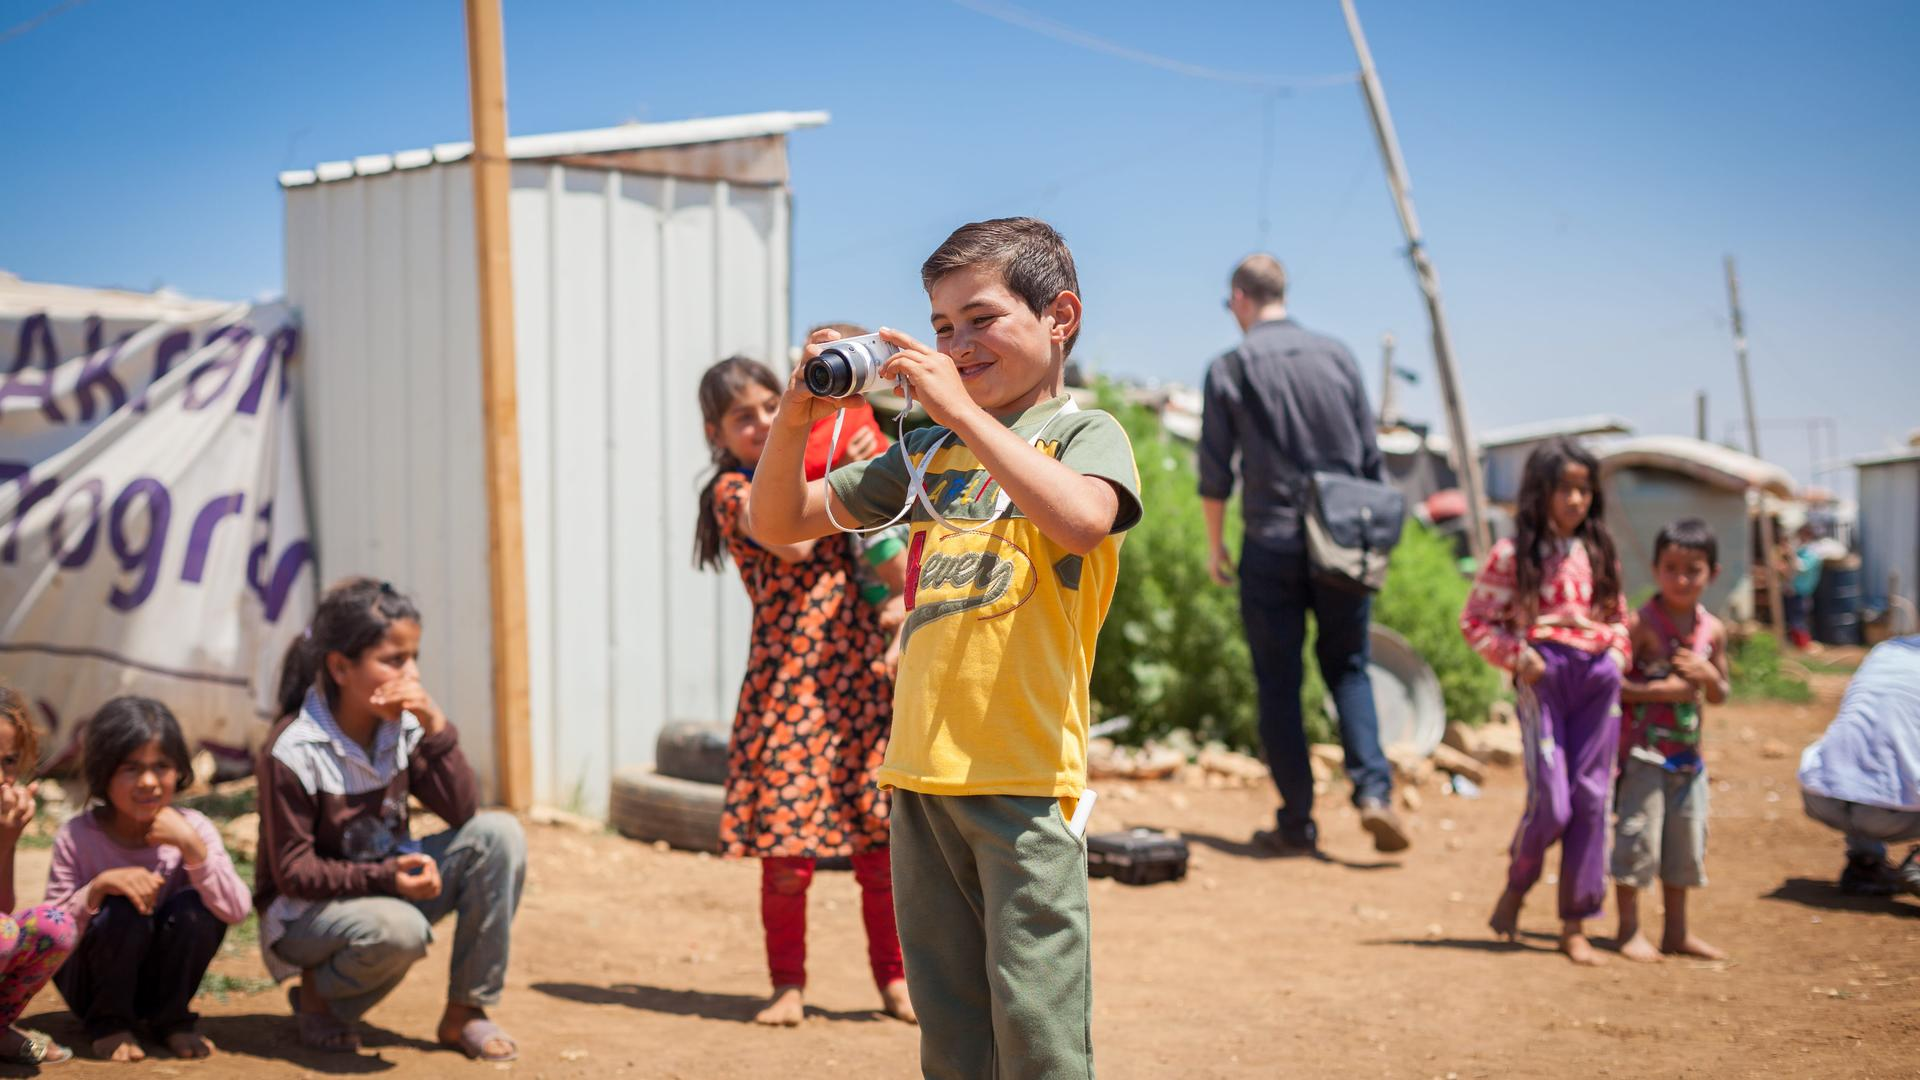 Maher, a Syrian boy, takes photographs of his friends in a refugee camp in Lebanon